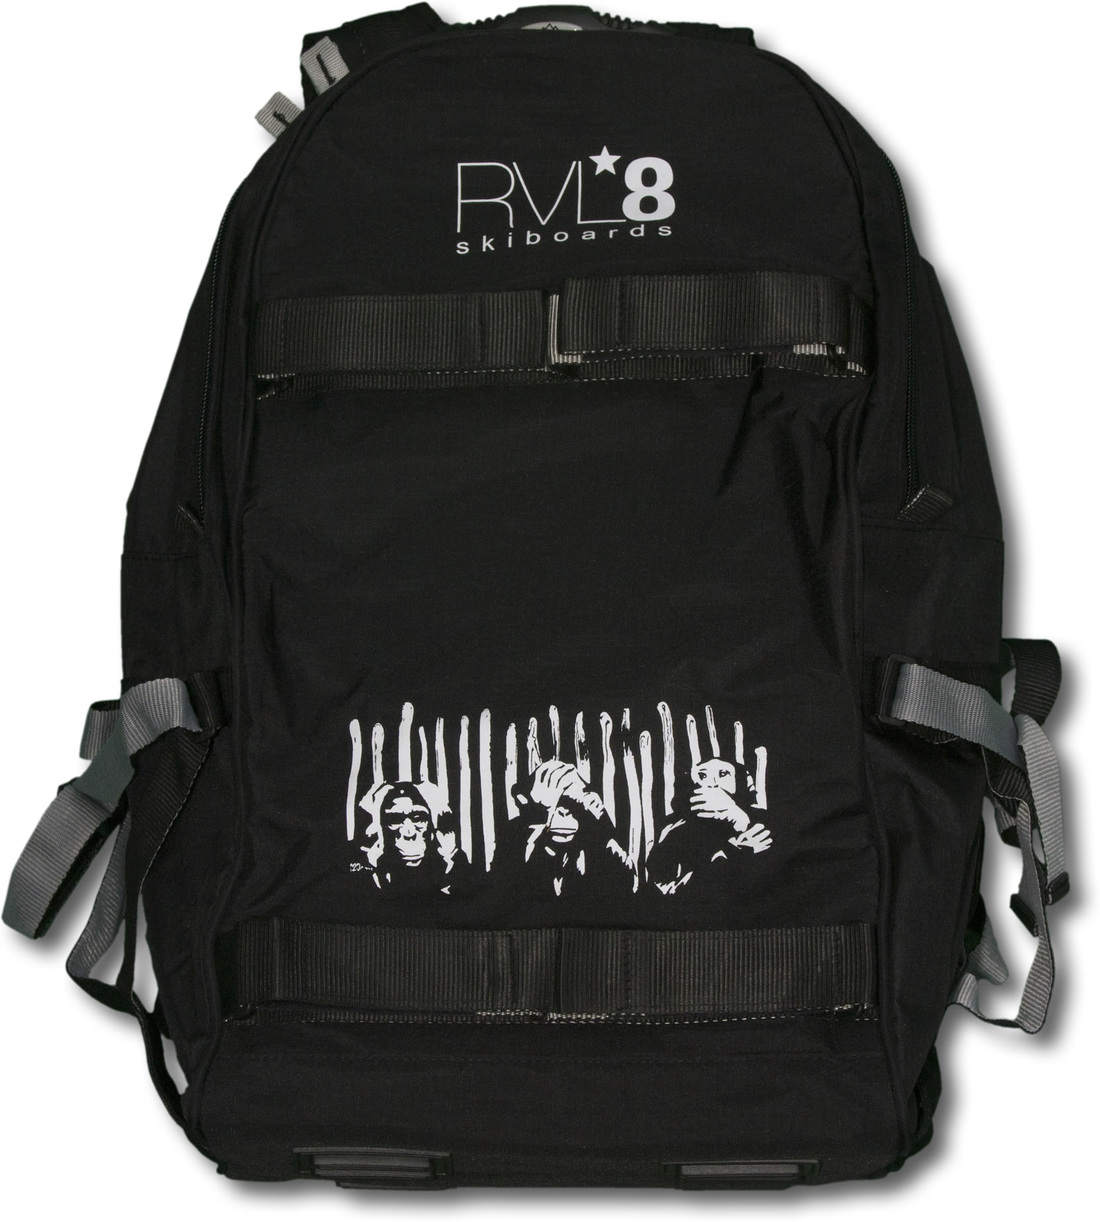 RVL8 Monkey Backpack